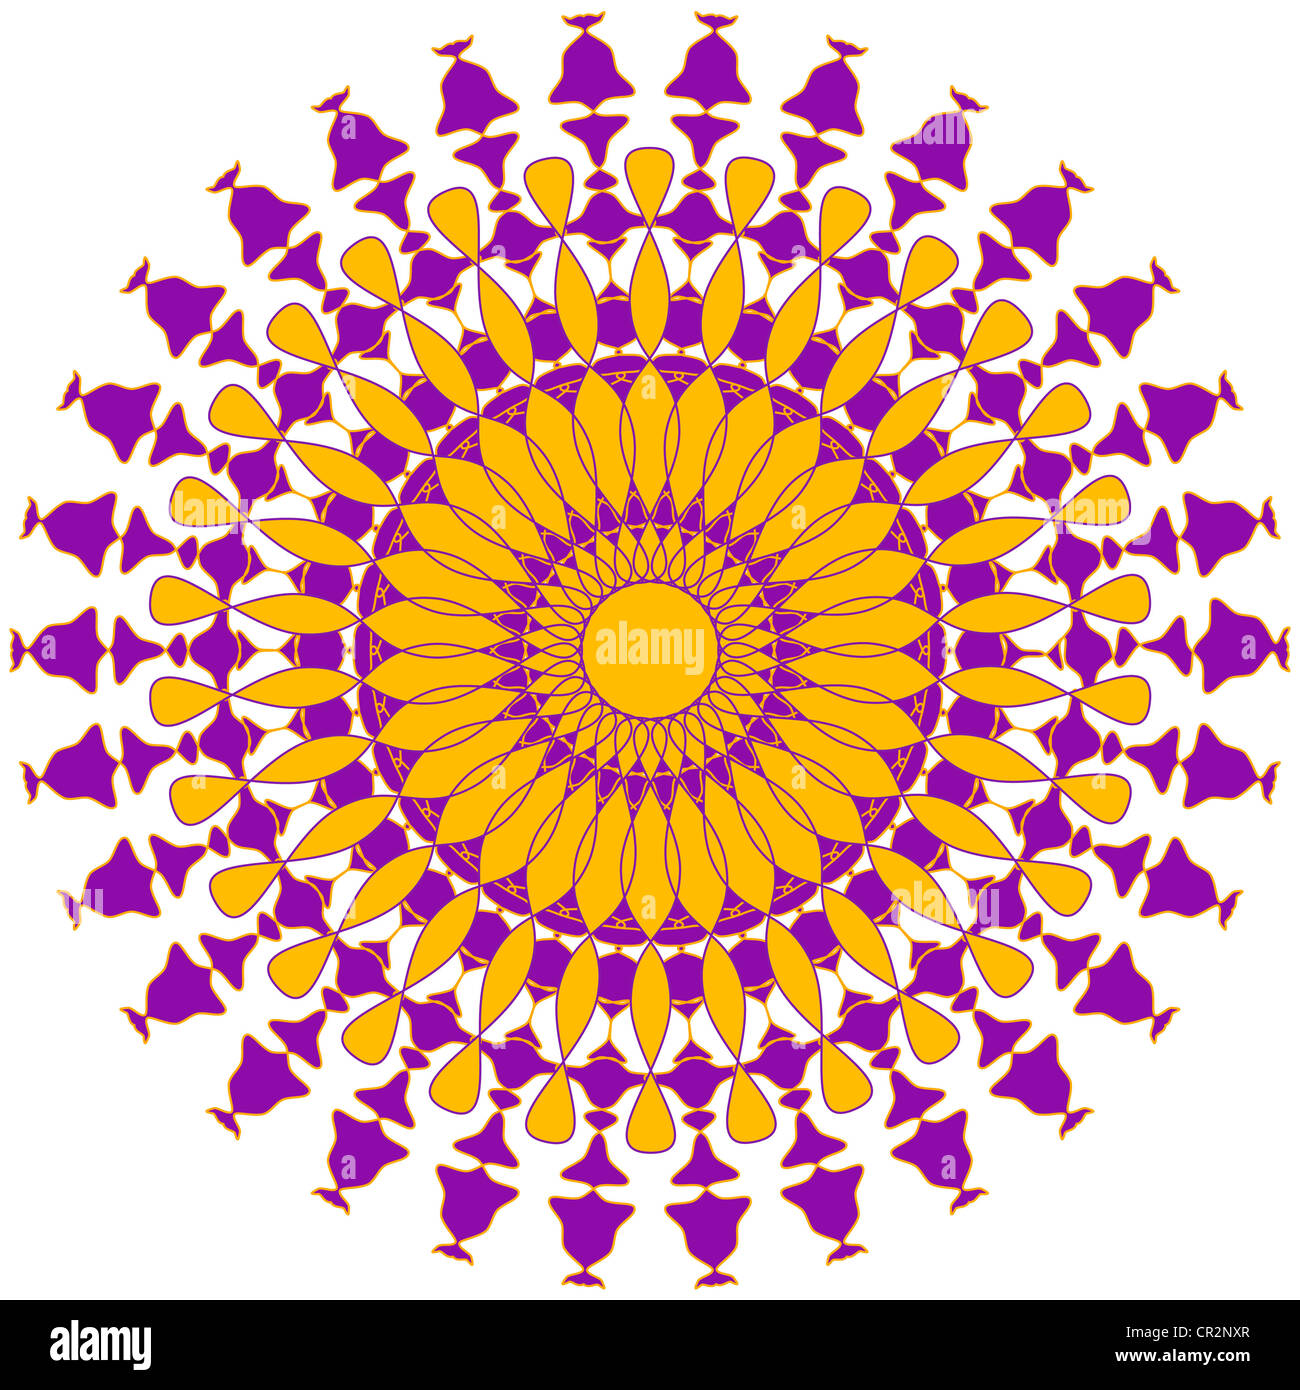 Artistic mandala pattern in violet and yellow Stock Photo